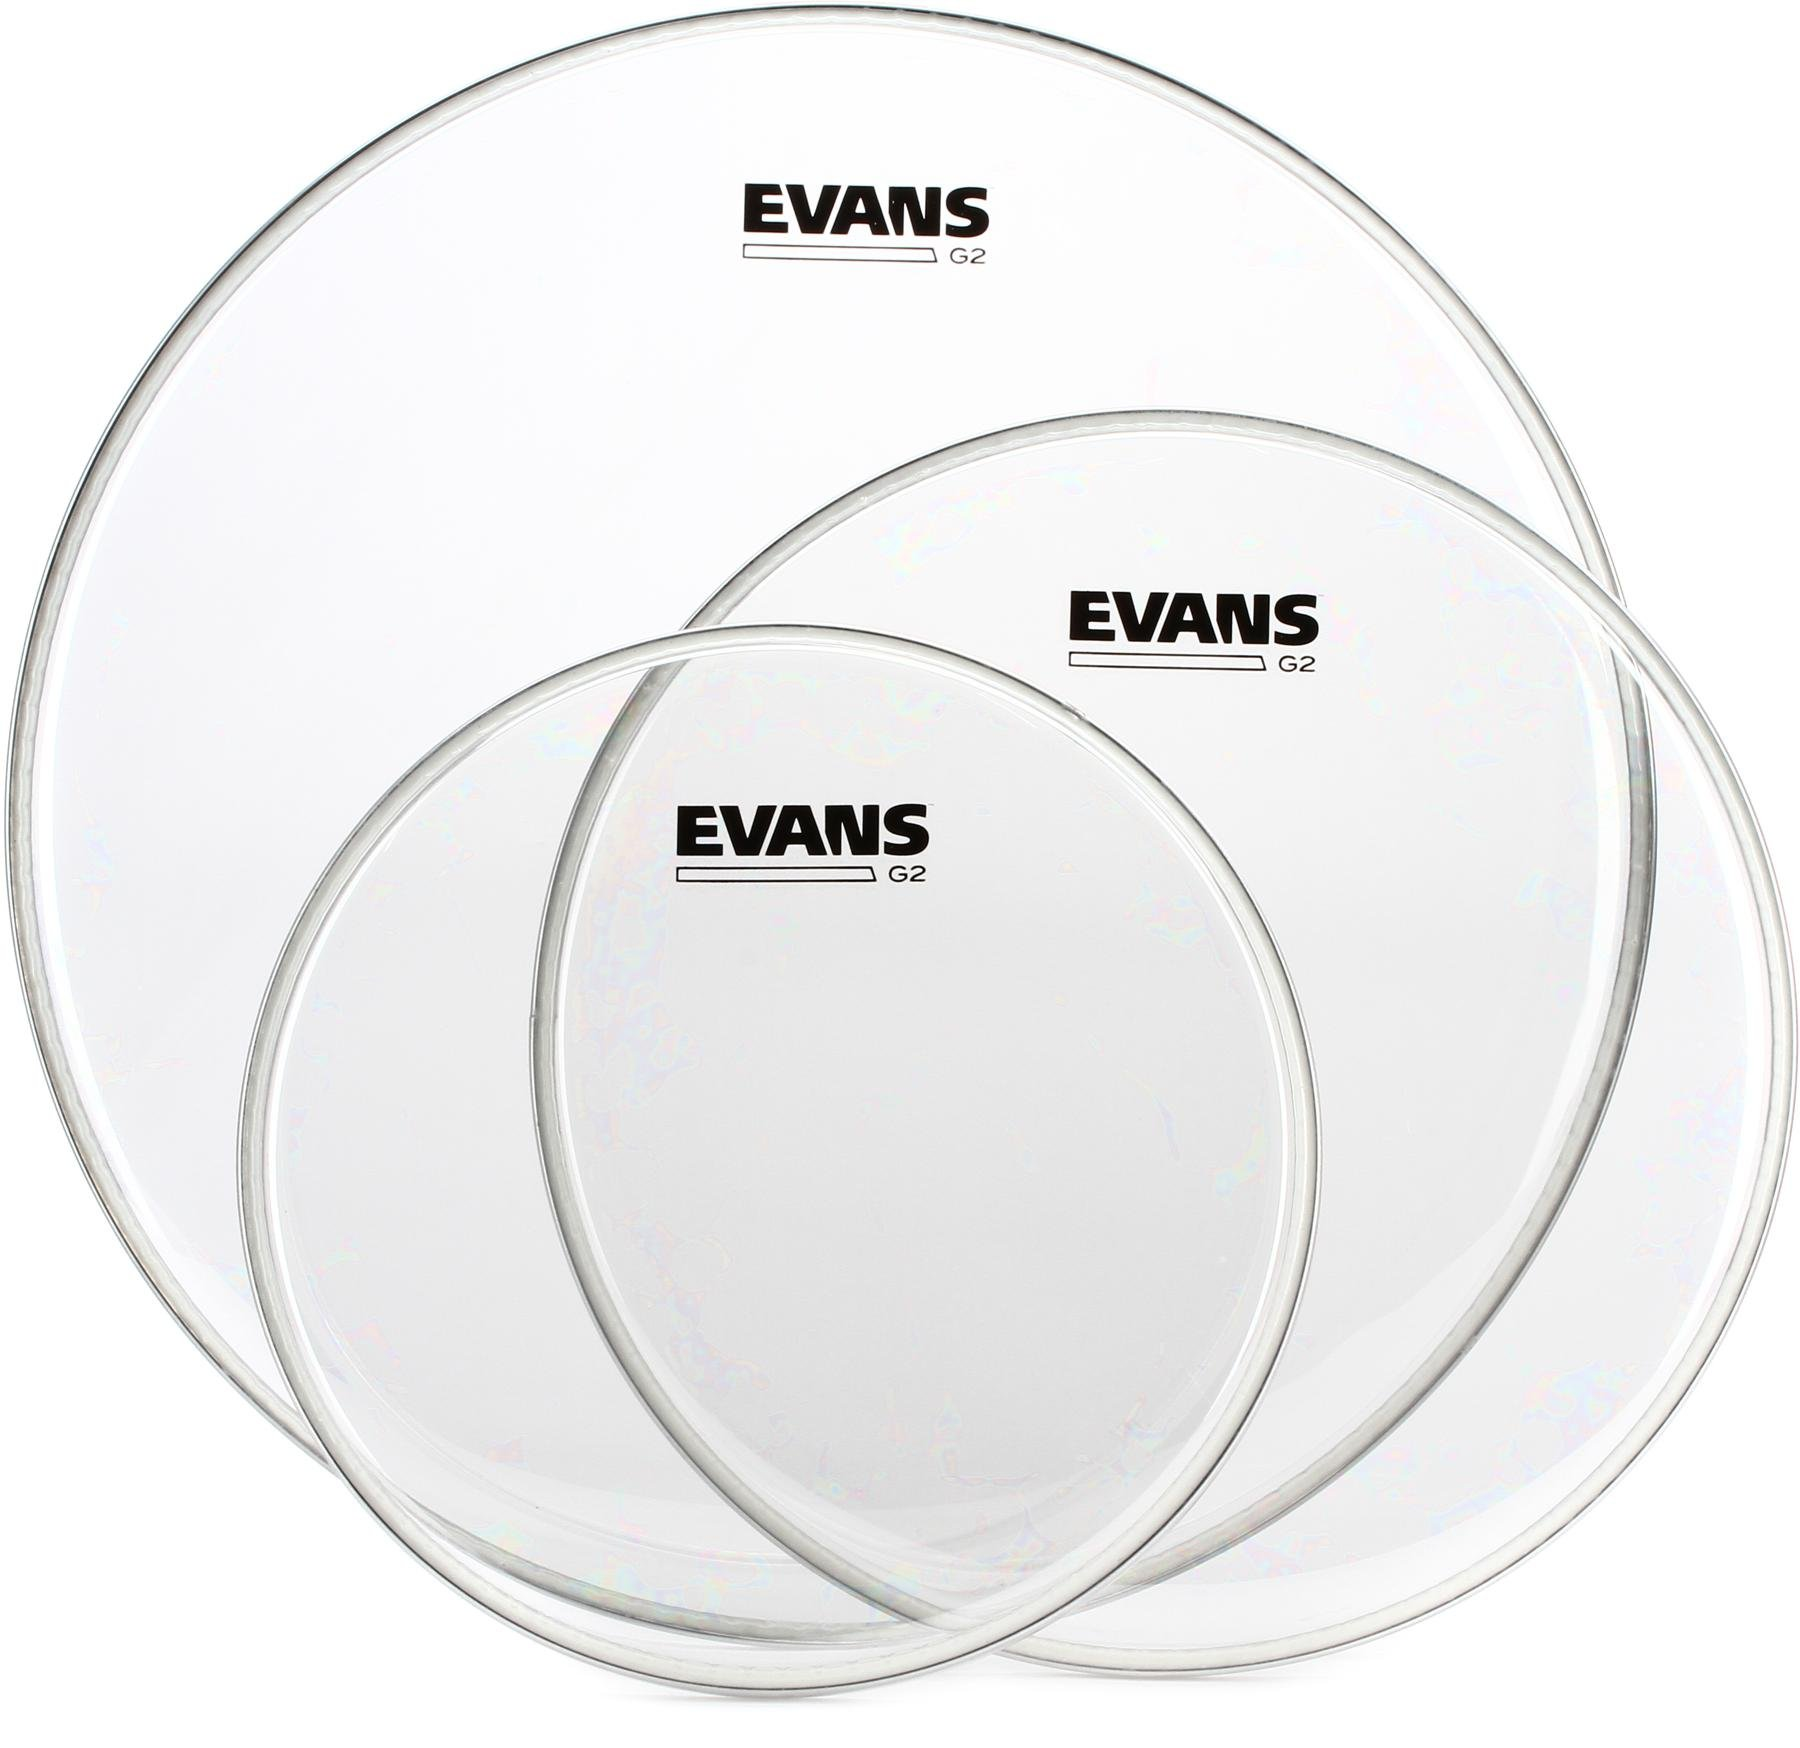 evans g2 tom pack 10 12 16 clear sweetwater 12 String Acoustic Guitar Tuning evans g2 tom pack 10 12